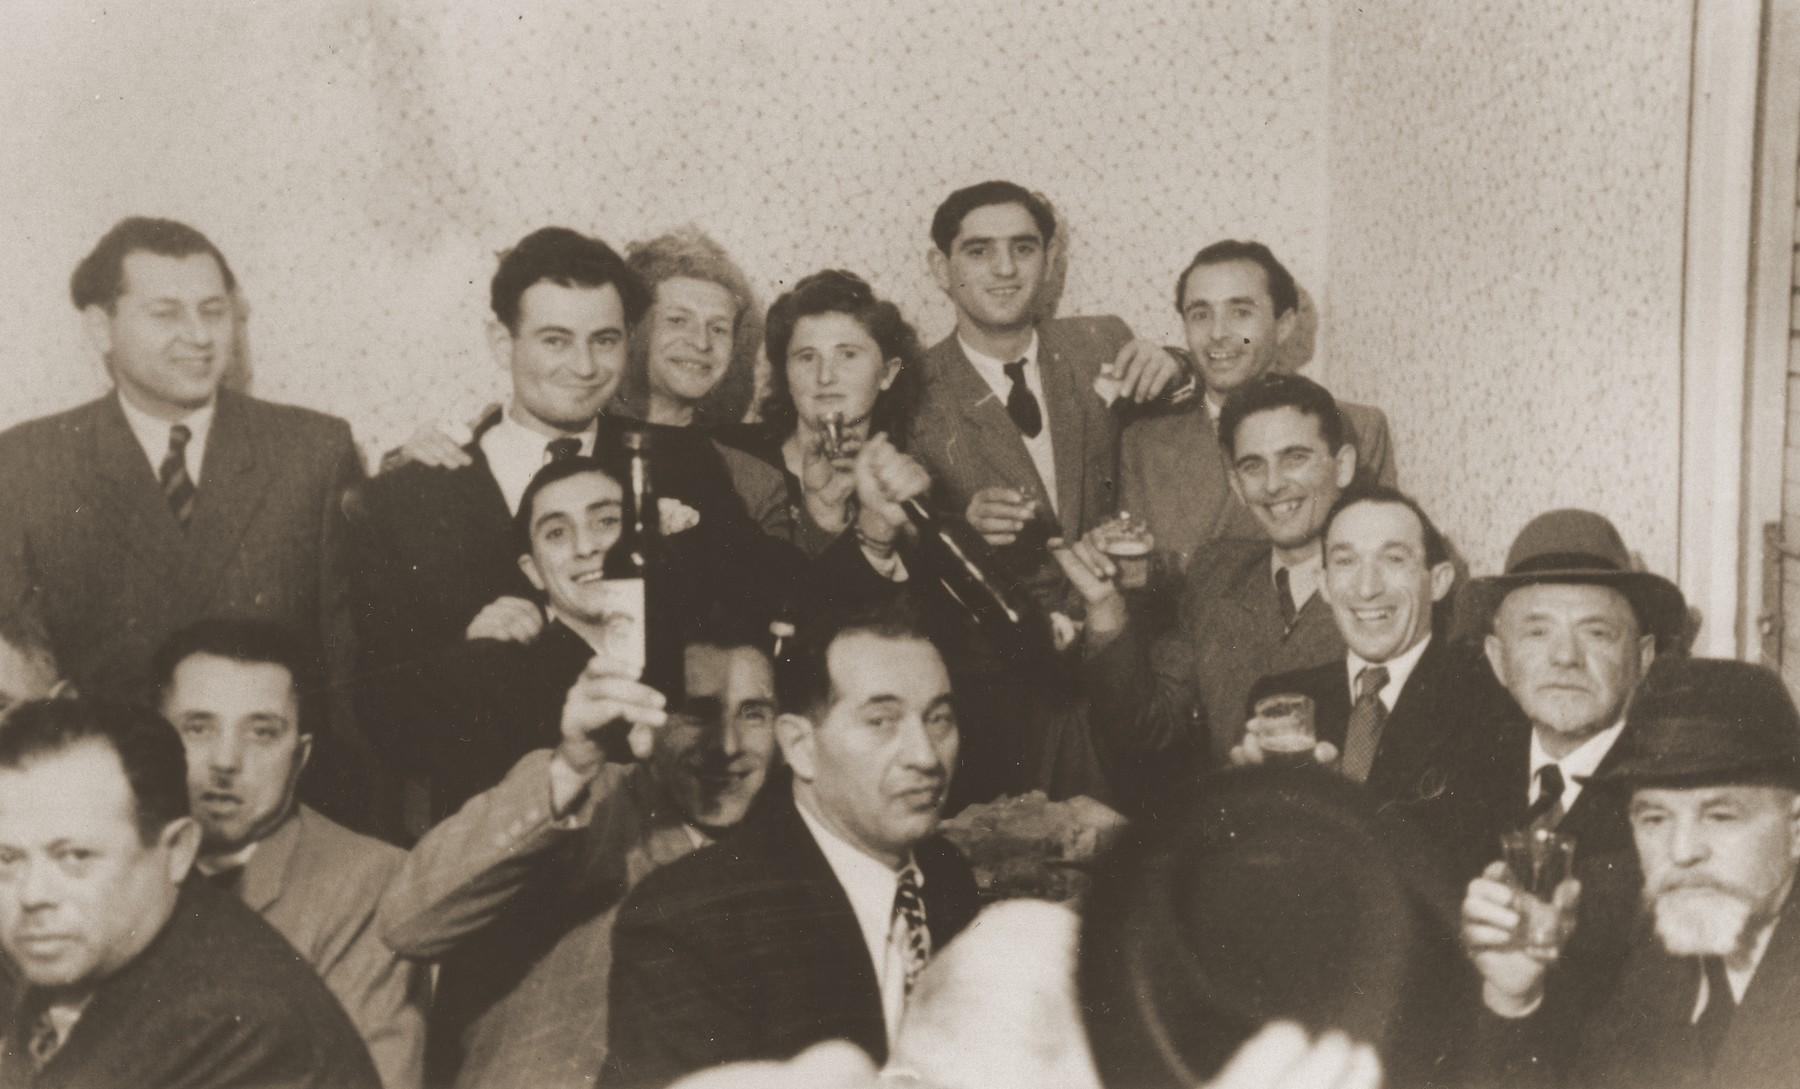 Jews raise their glasses and wine bottles in a toast at a social gathering in Sosnowiec.  Among those pictured are David and Hanka Enzelewicz, and David, Aaron and Joseph Jakobowicz.